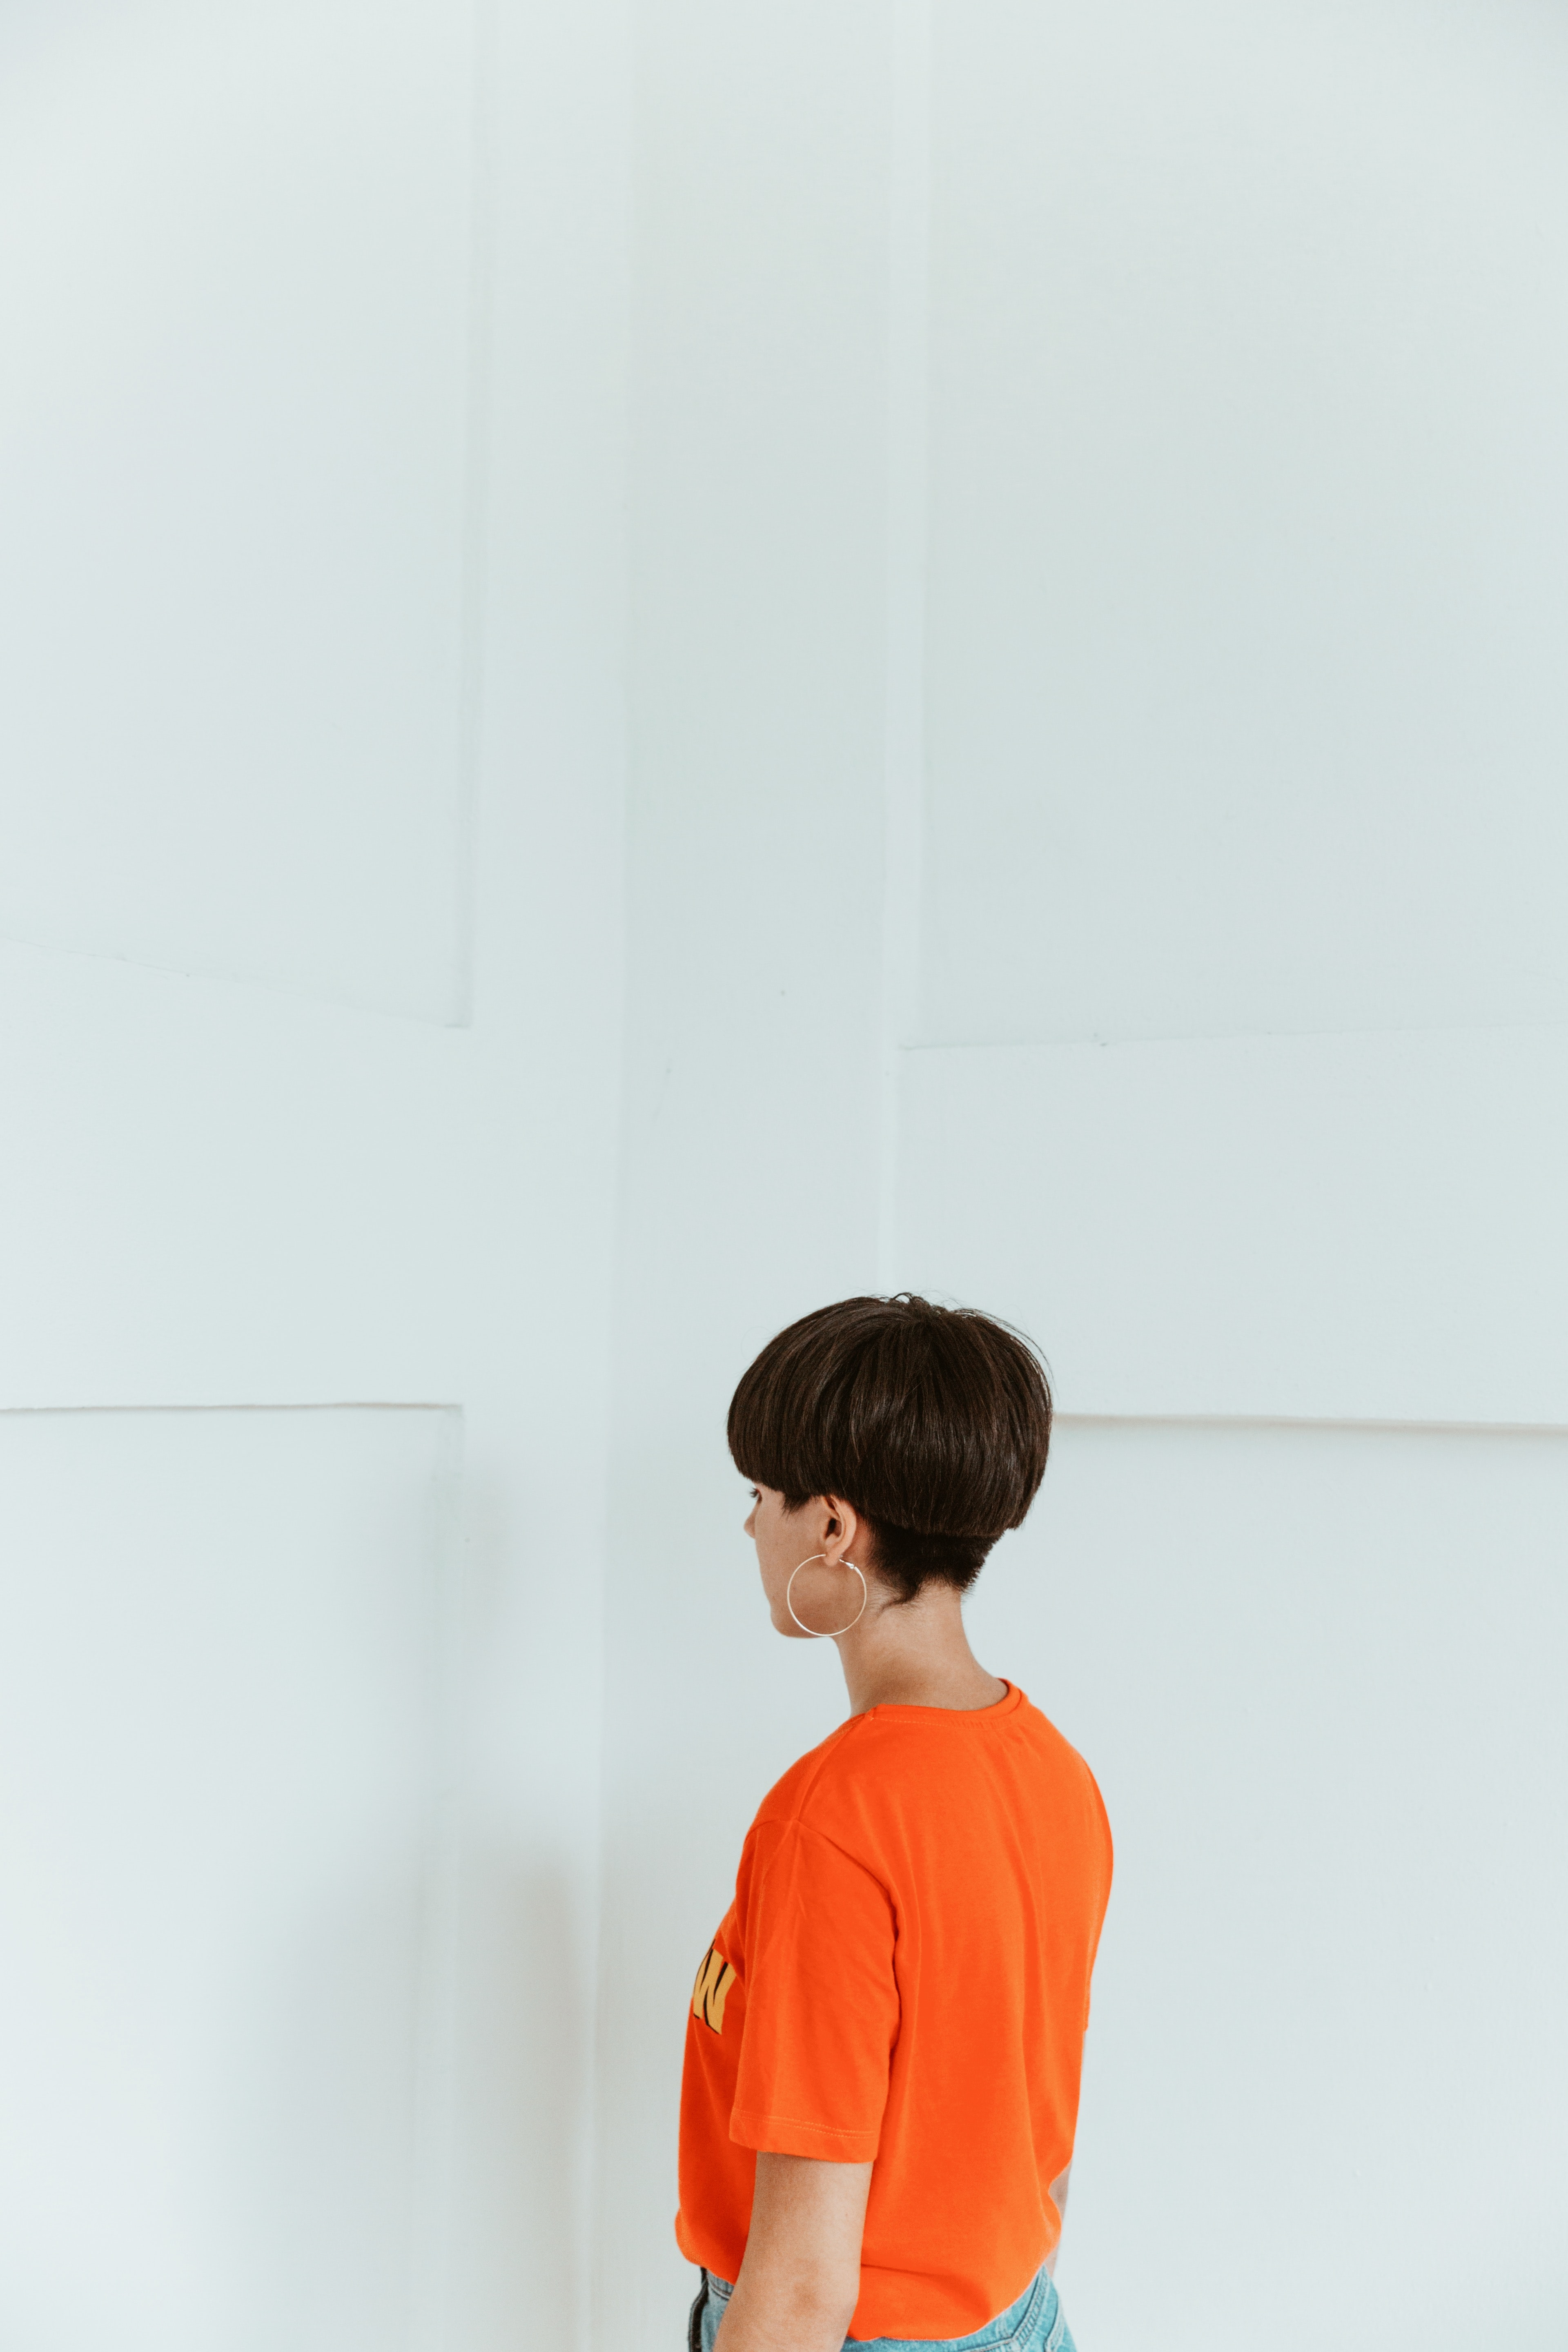 woman wearing orange shirt facing white wall